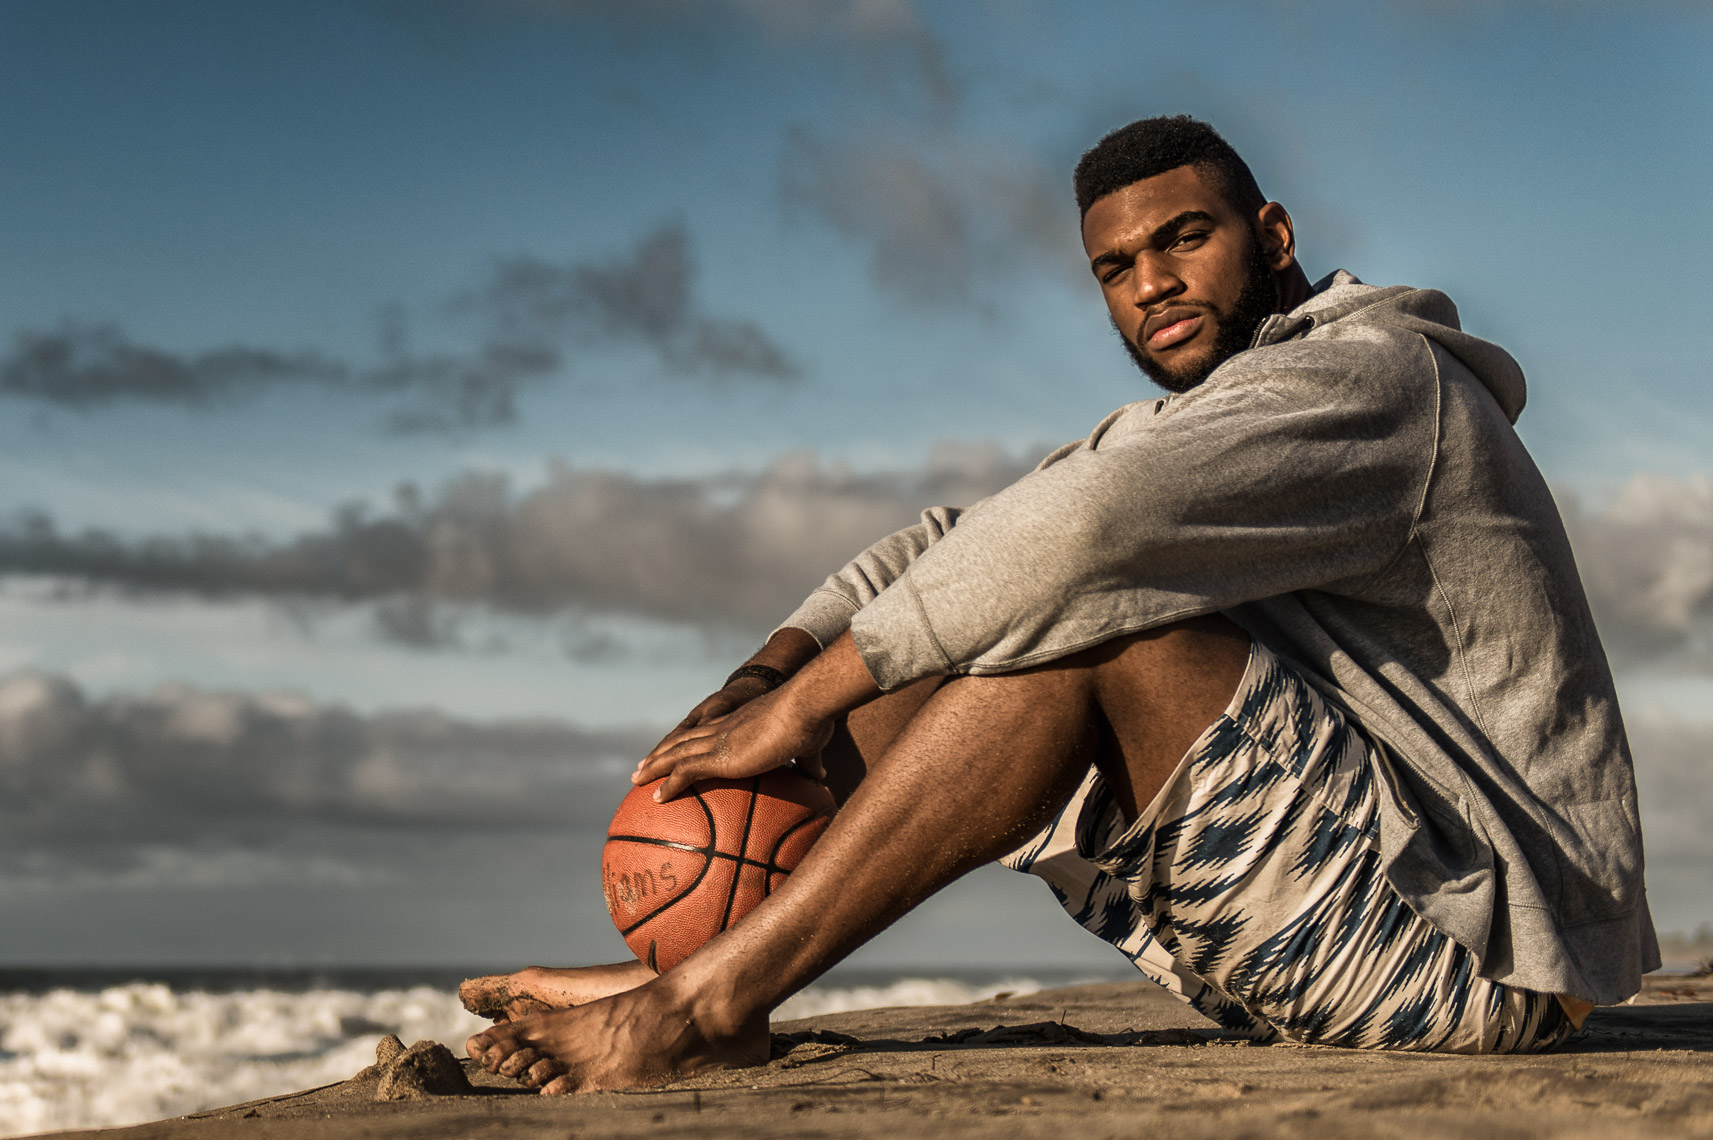 Kevin Steele  - portrait of an NBA basketball pro on the beach